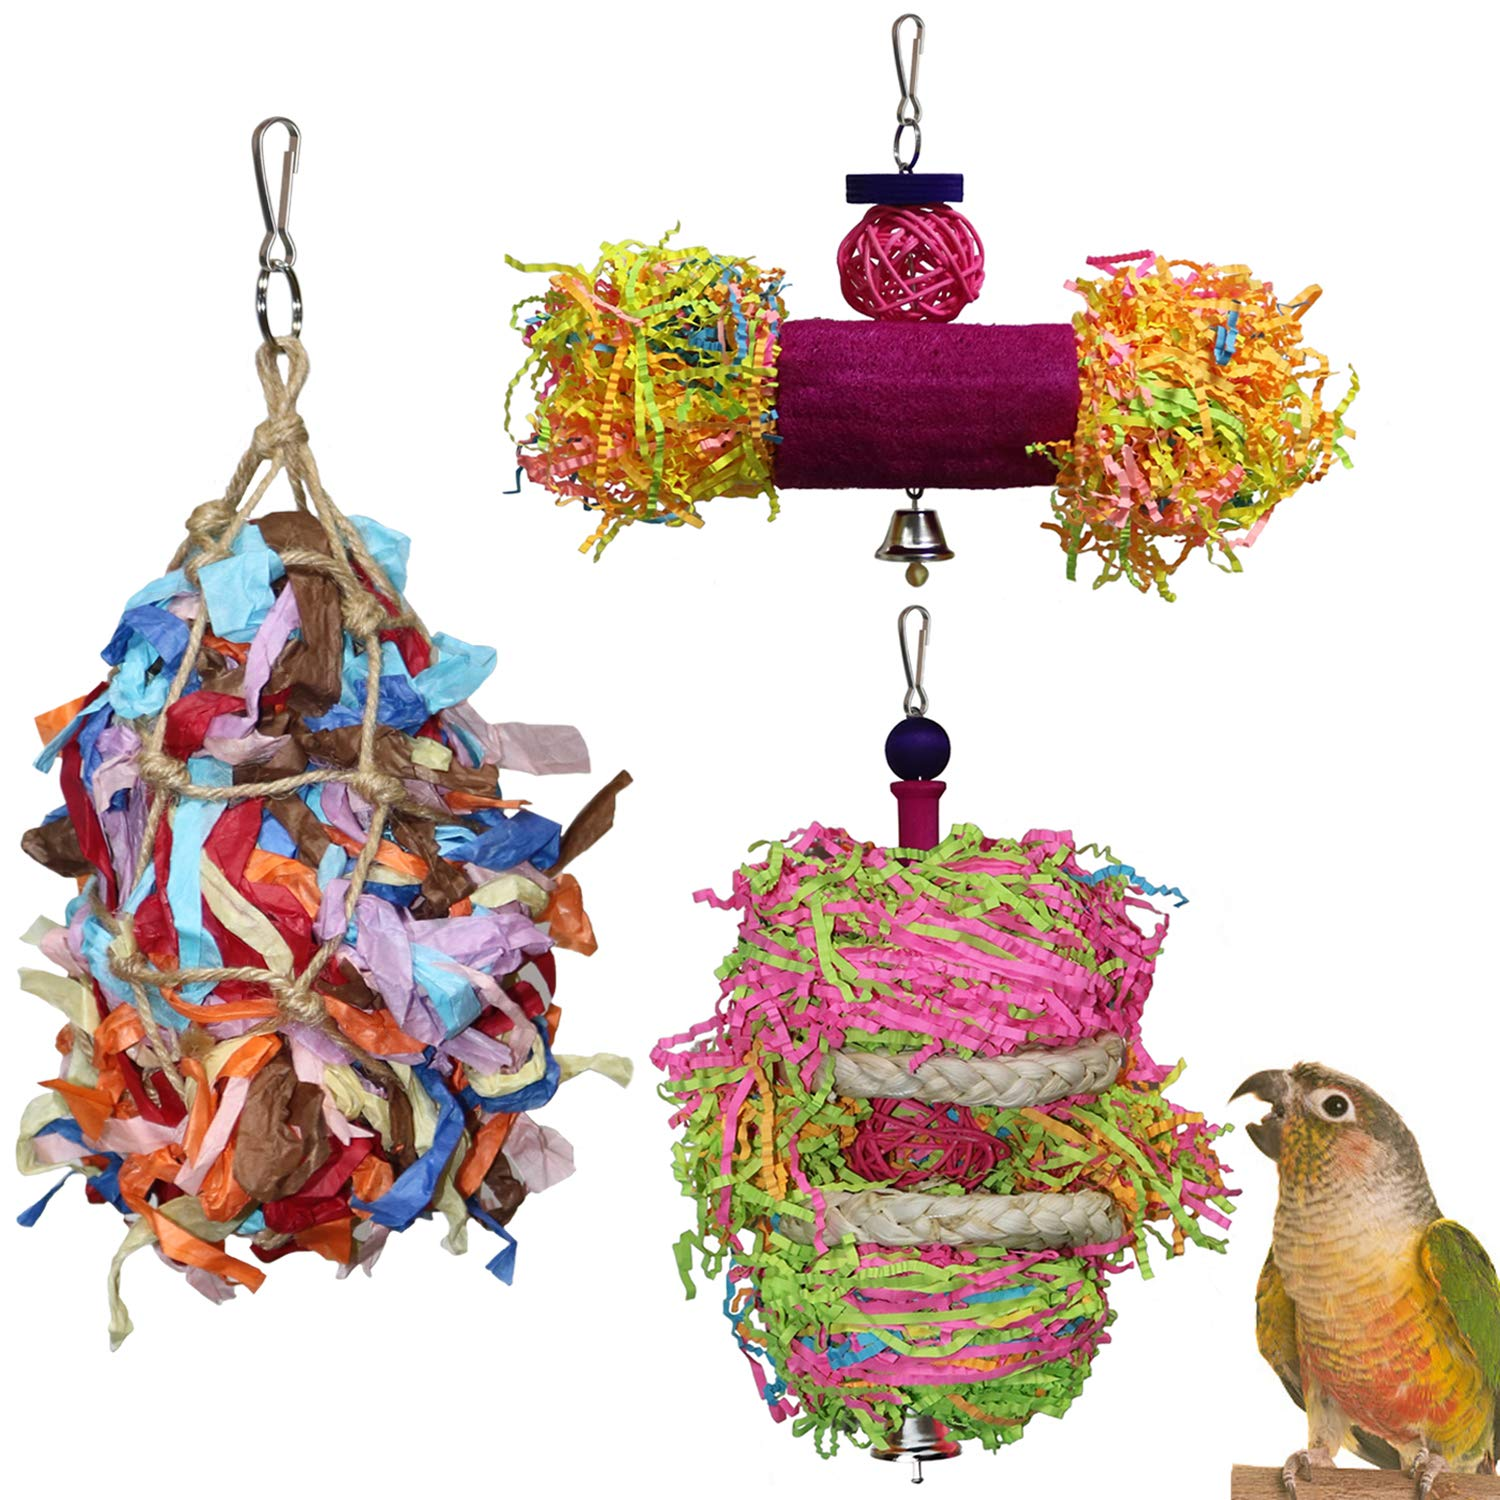 RYPET Bird Shredder Toys - Parrot Foraging Hanging Toy for Cockatiel Conure African Grey Amazon (3 Pack) by RYPET